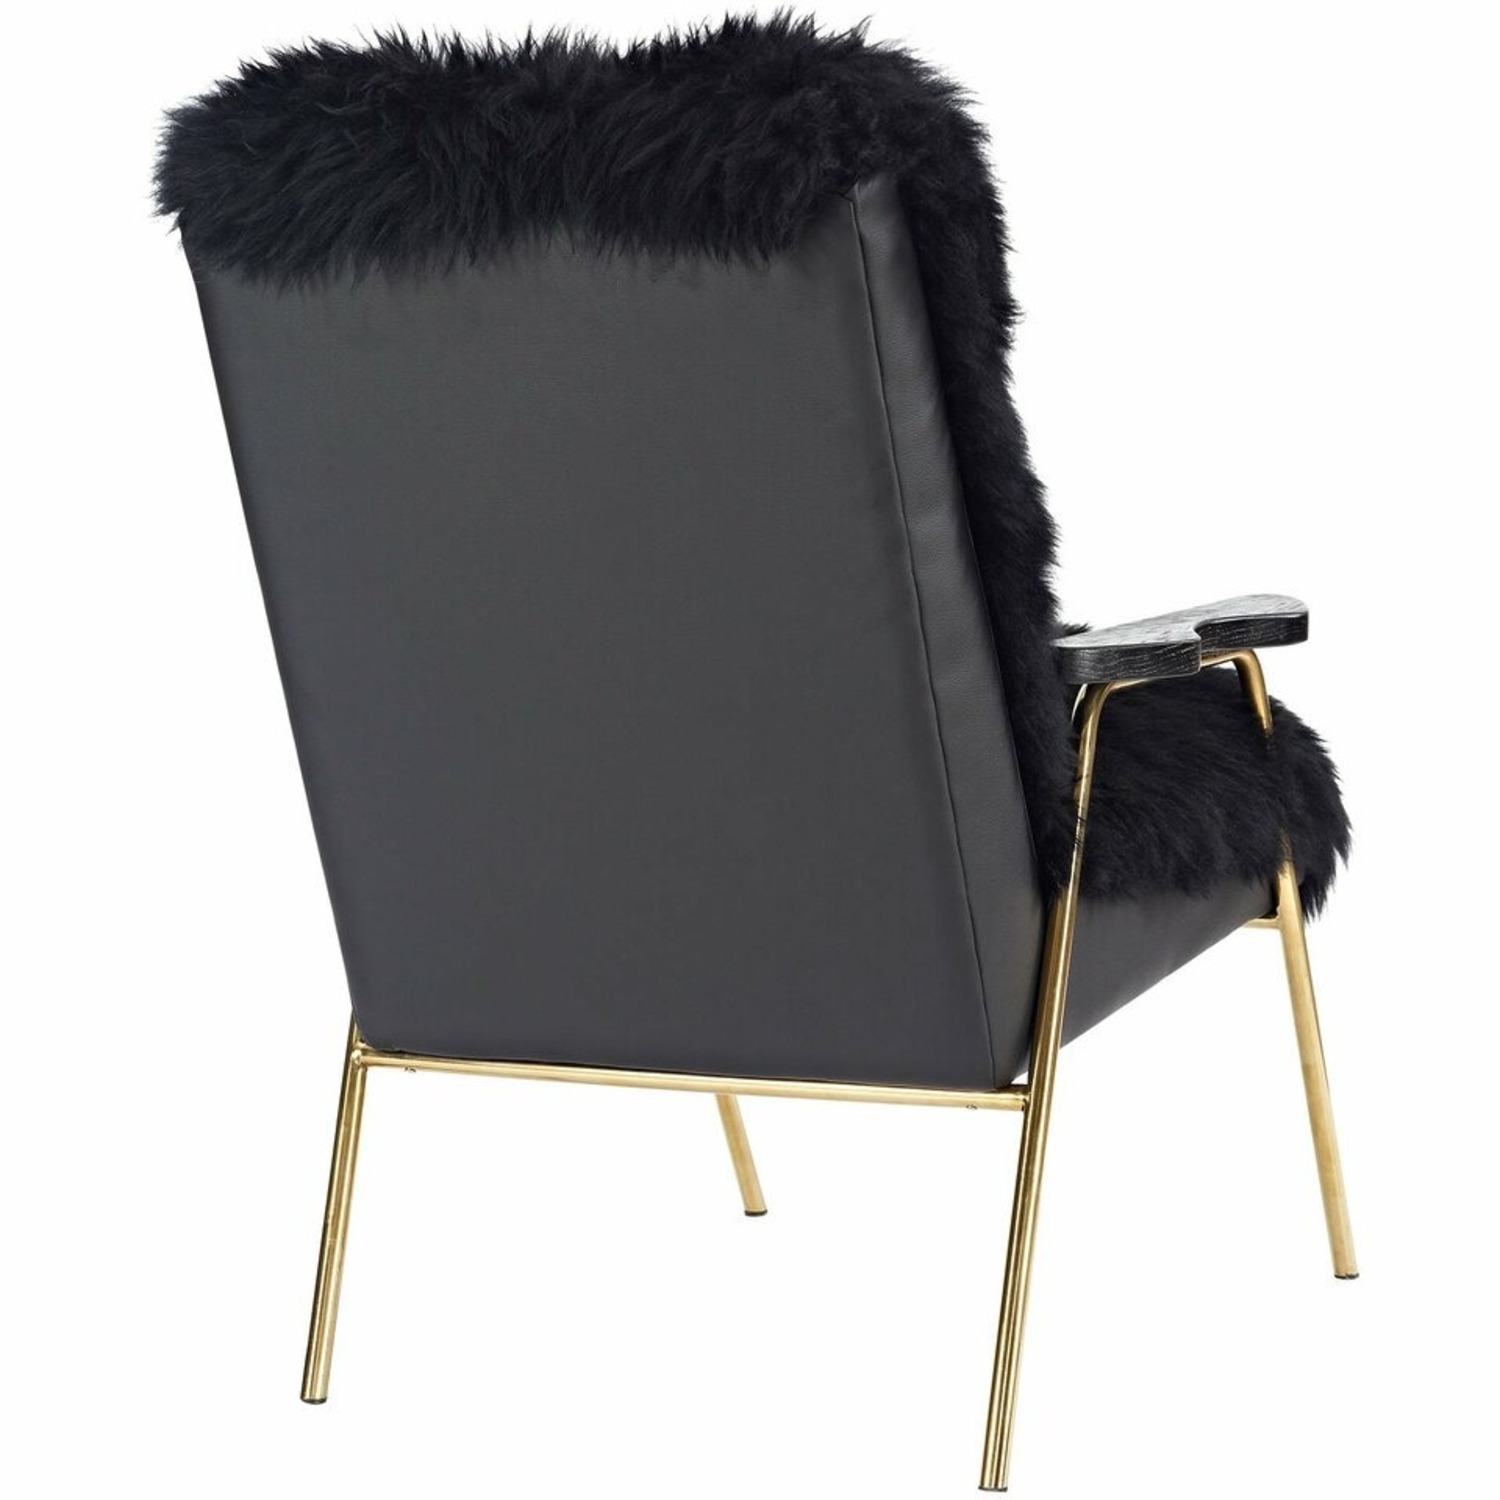 Armchair In Black Sheepskin Fabric Upholstery - image-2